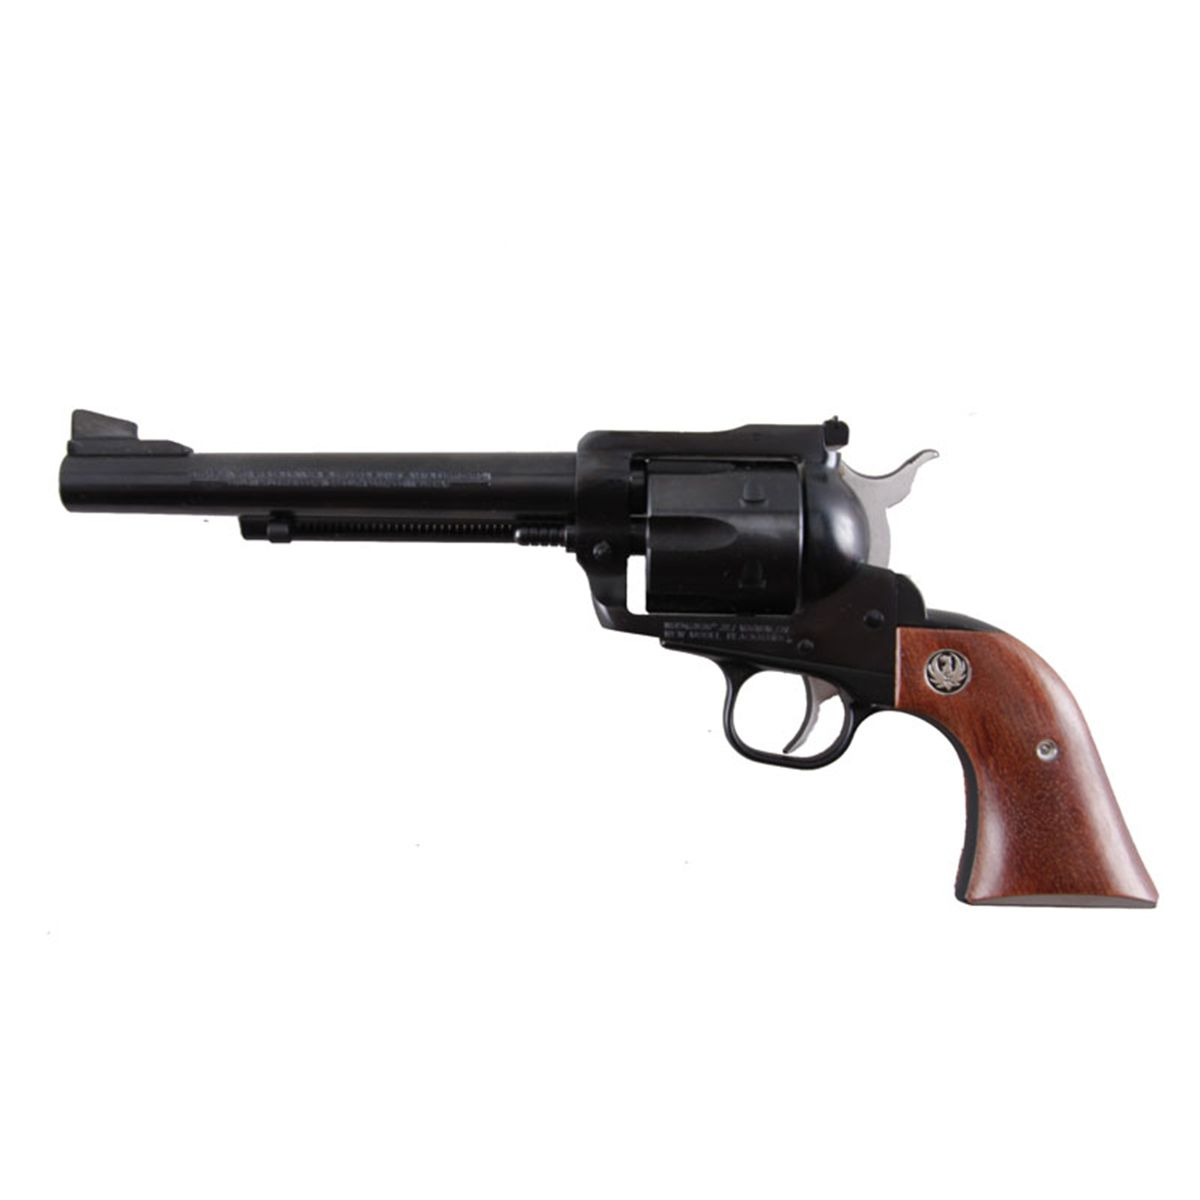 Mm revolvers http sfes learnfirefighting org ruger 9mm revolver